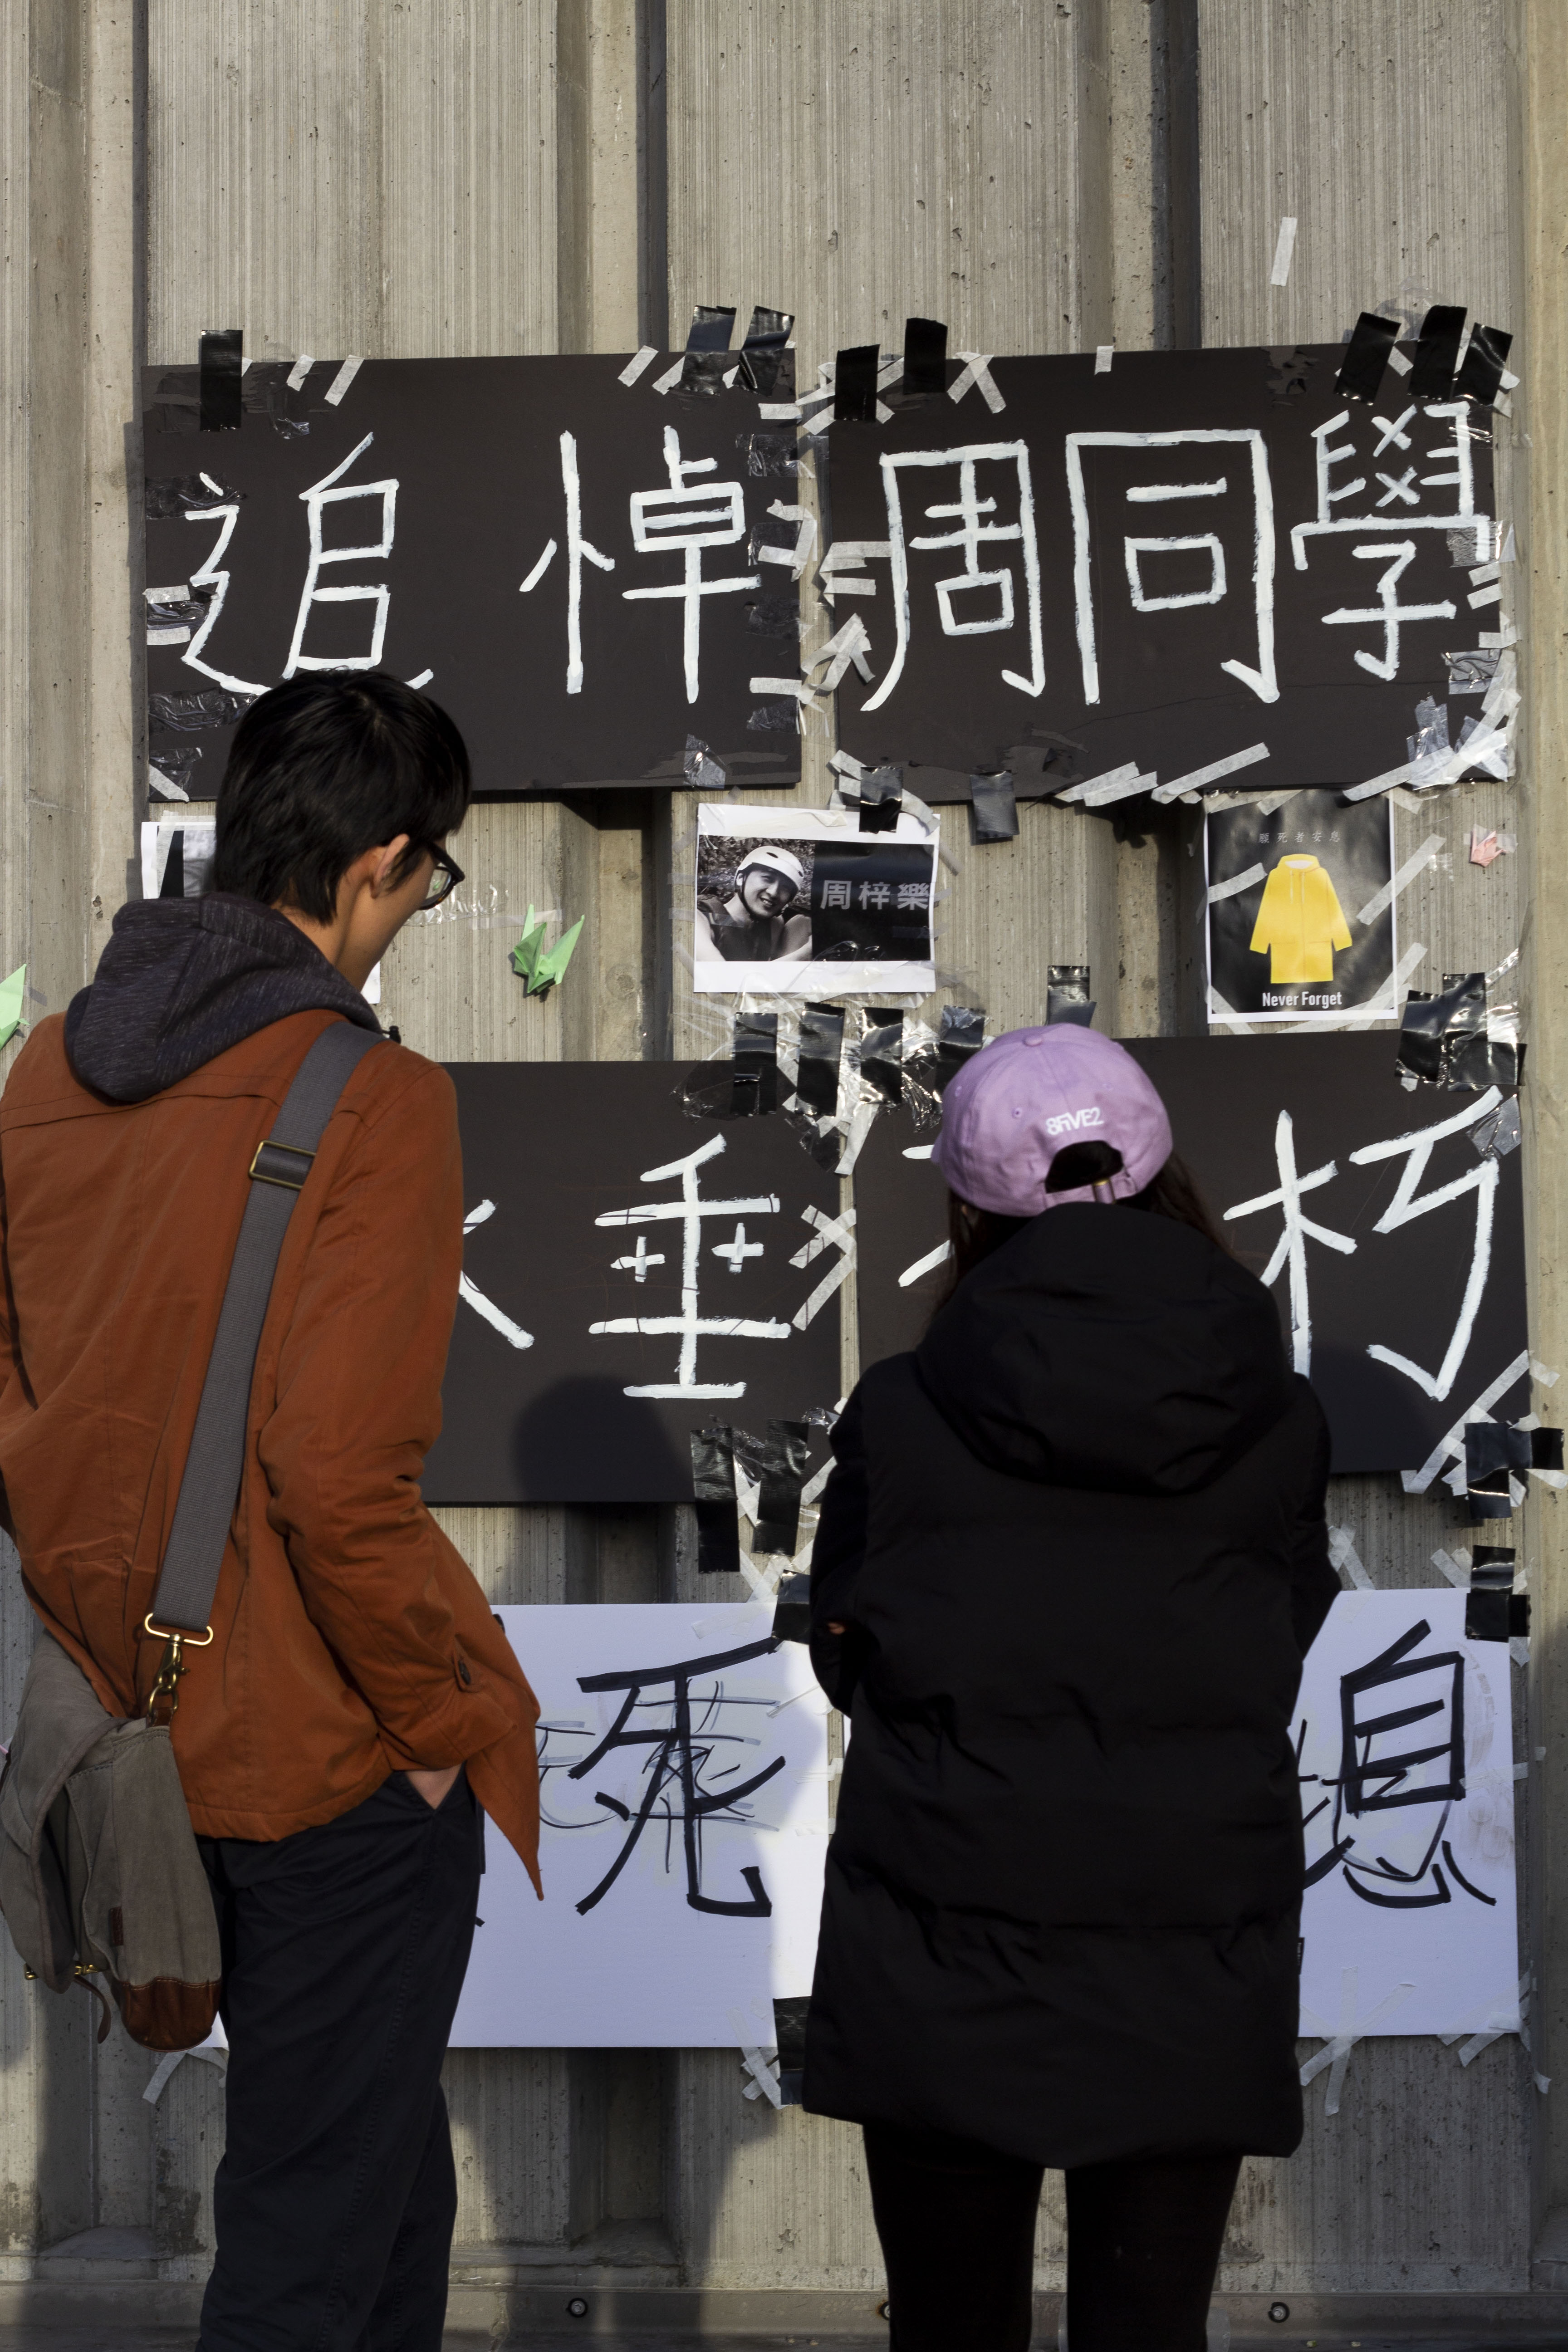 A Lennon Wall was made in memory of two Hong Kongers, Alex Chow and Chan Yin-Lam.